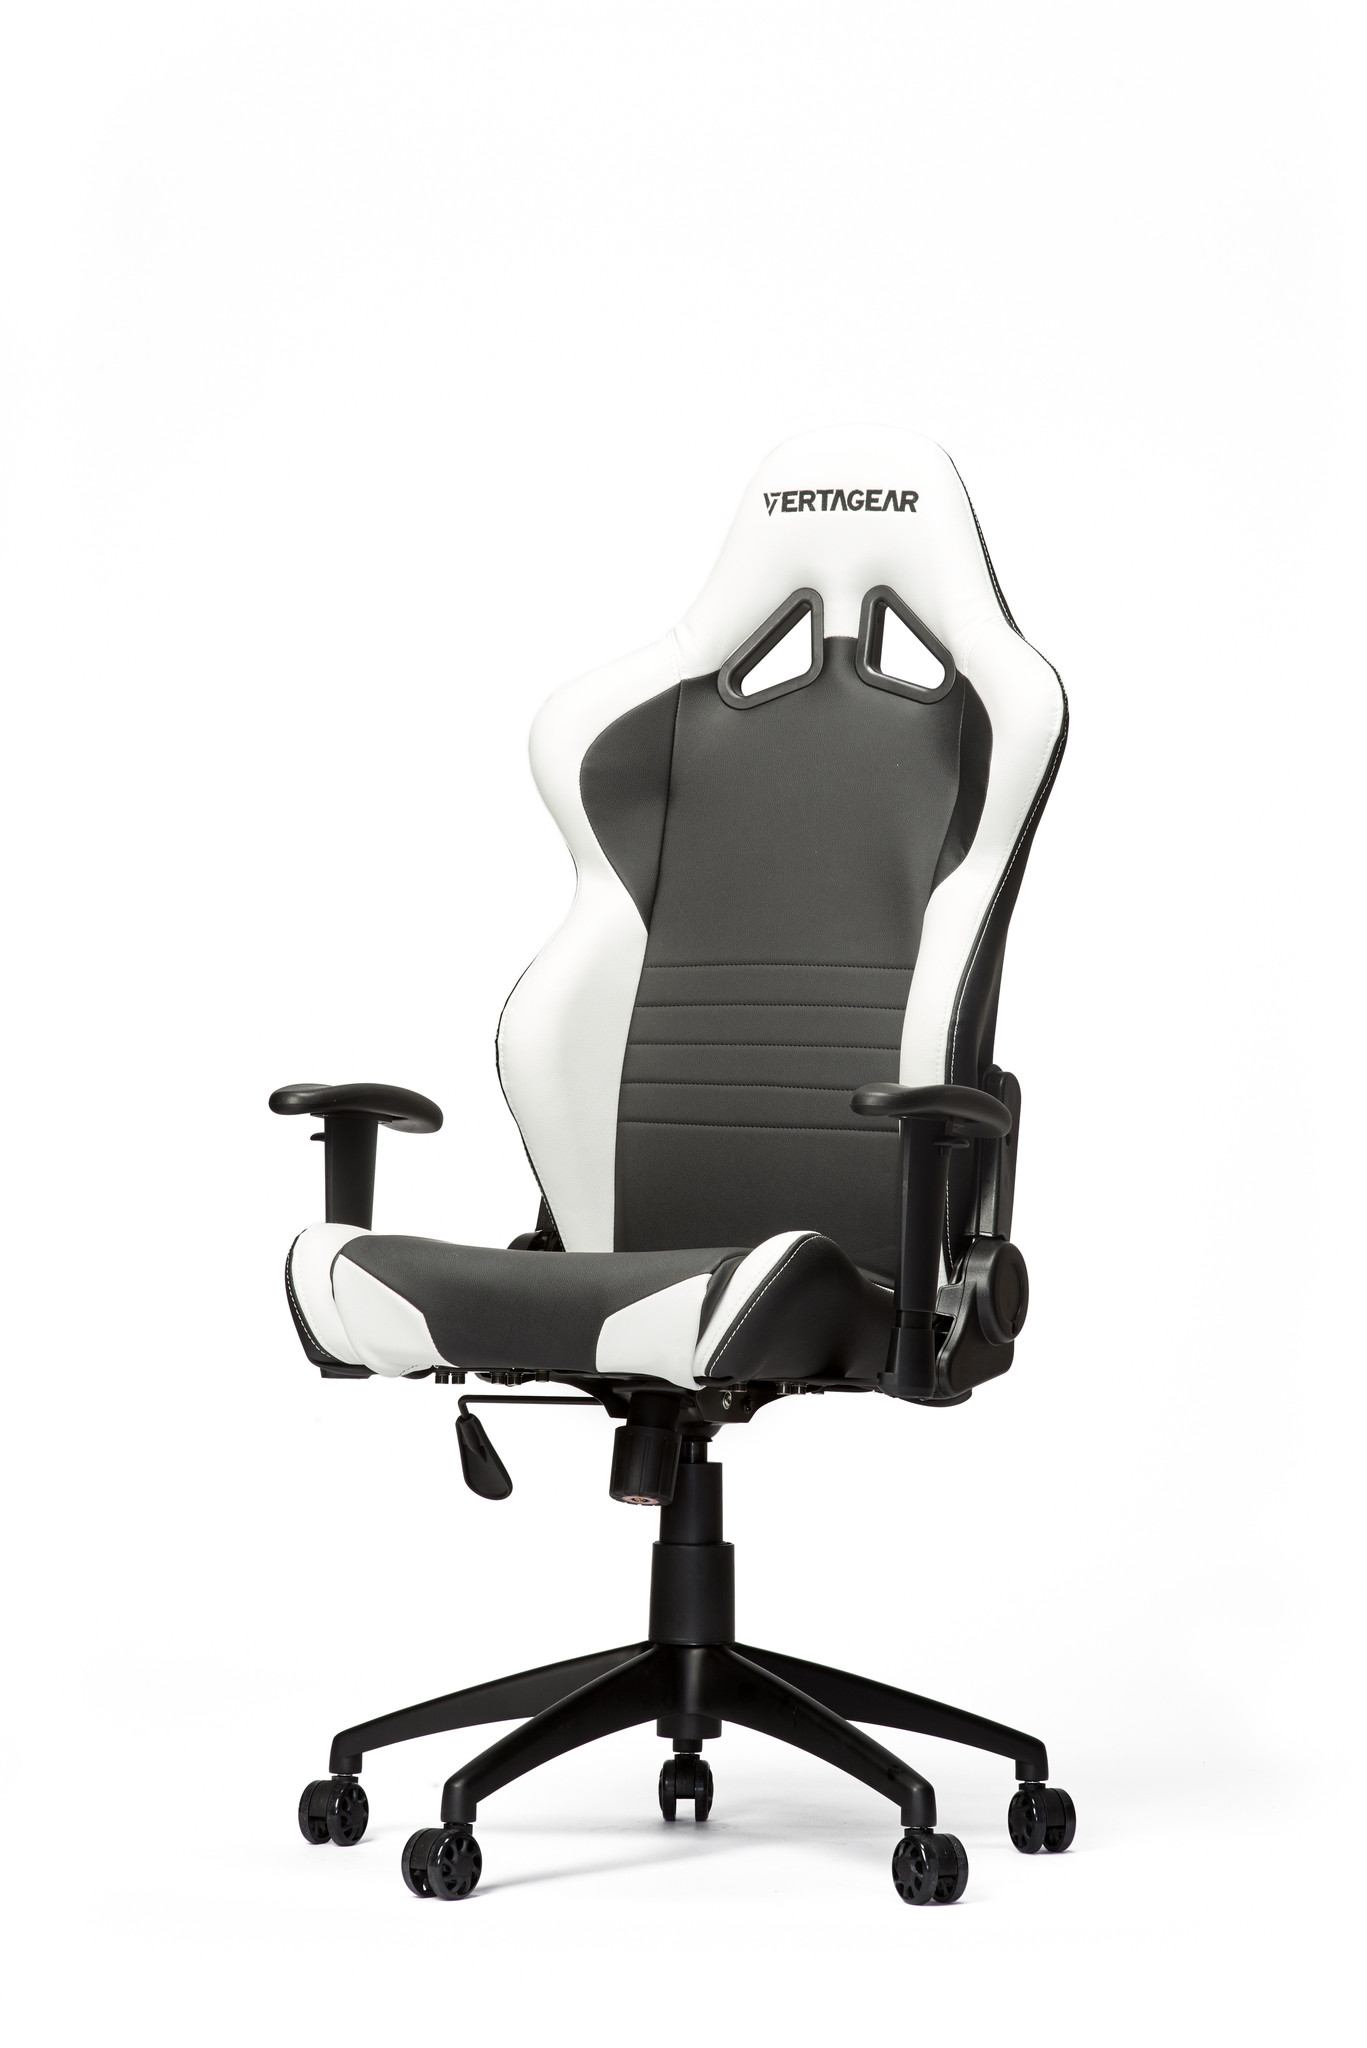 Review Vertagear SL 2000 racing series gaming chair TechDissected